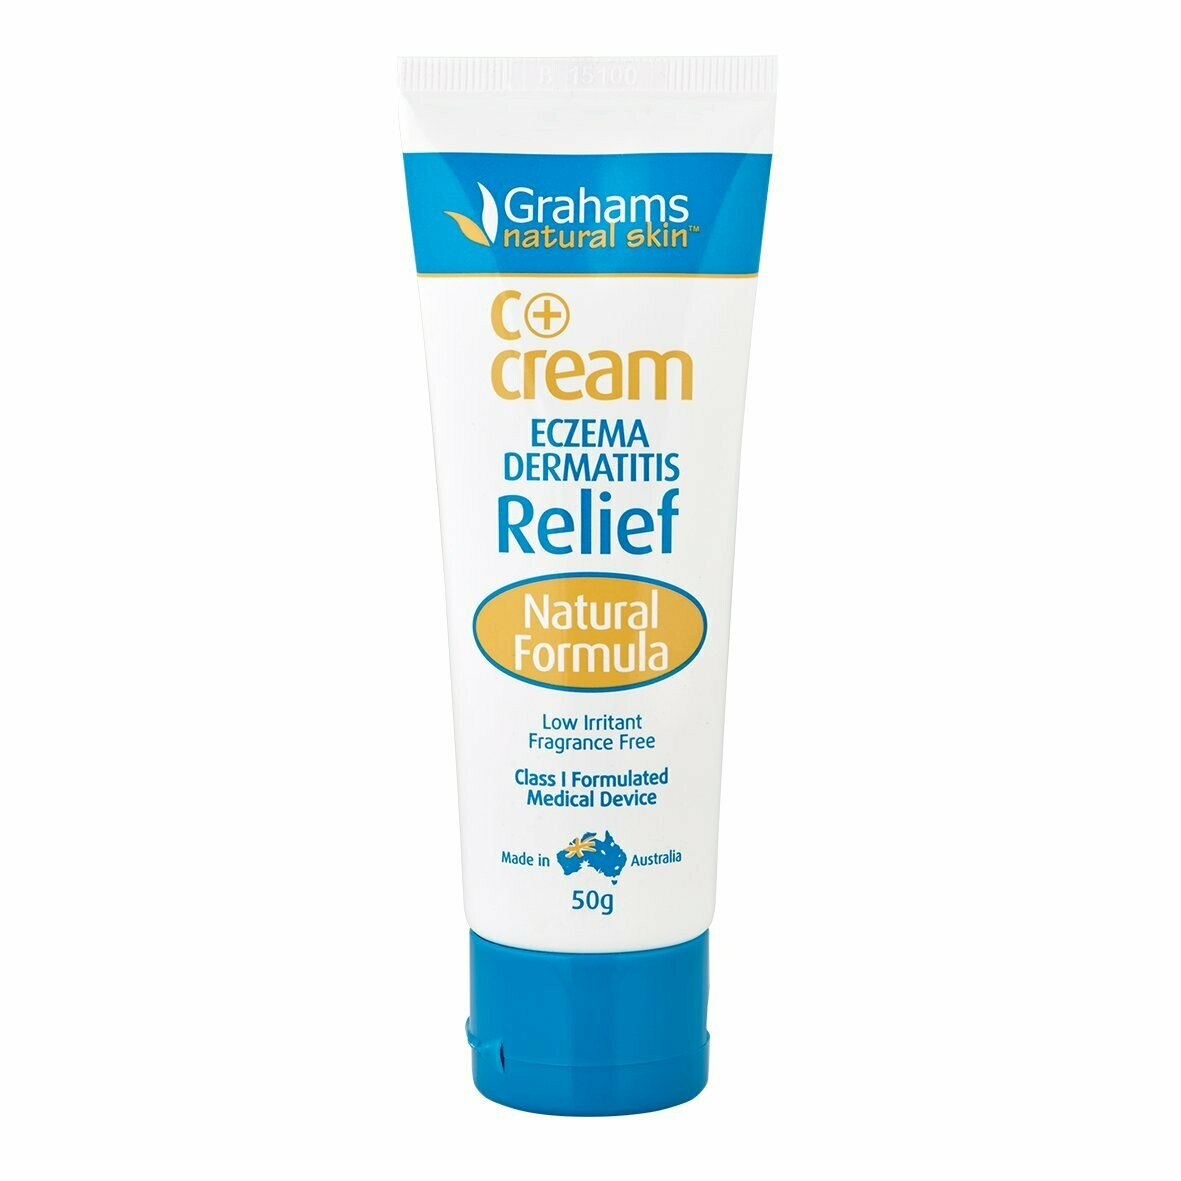 Grahams Natural C+ Eczema & Dermatitis Cream